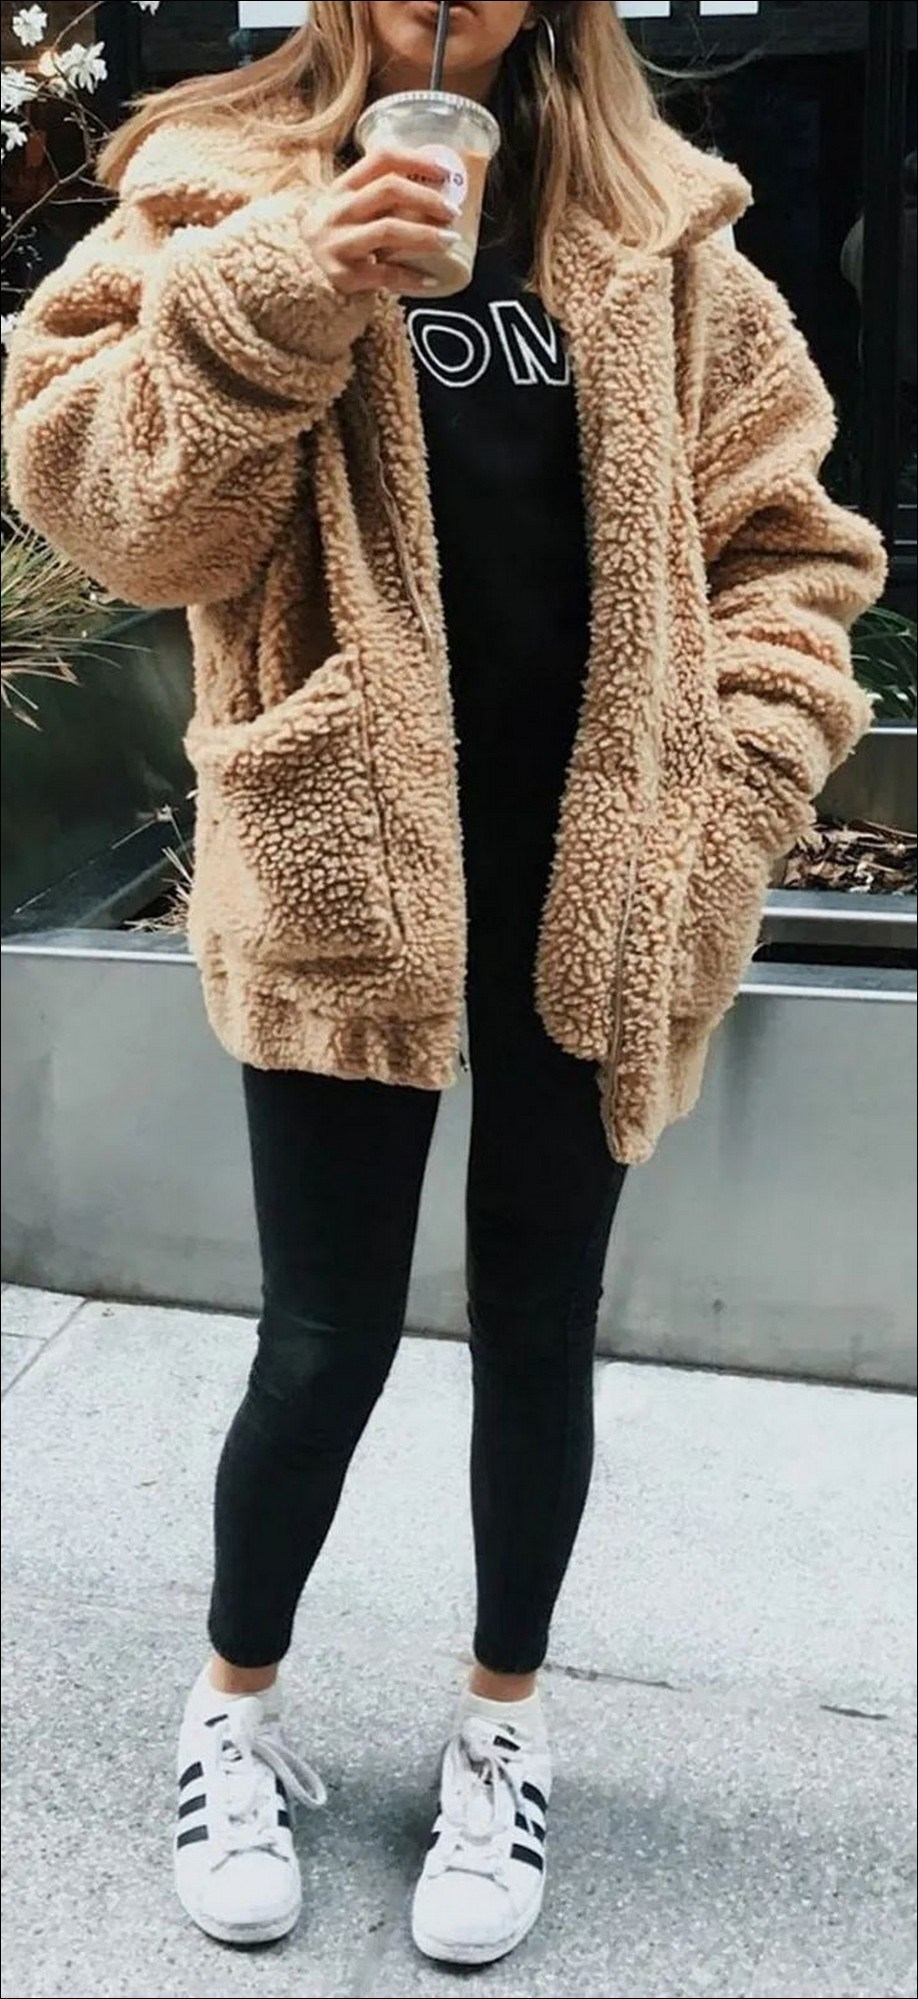 50+ checkered vans casual autumn outfit, winter outfit, style, outfit inspiration 19